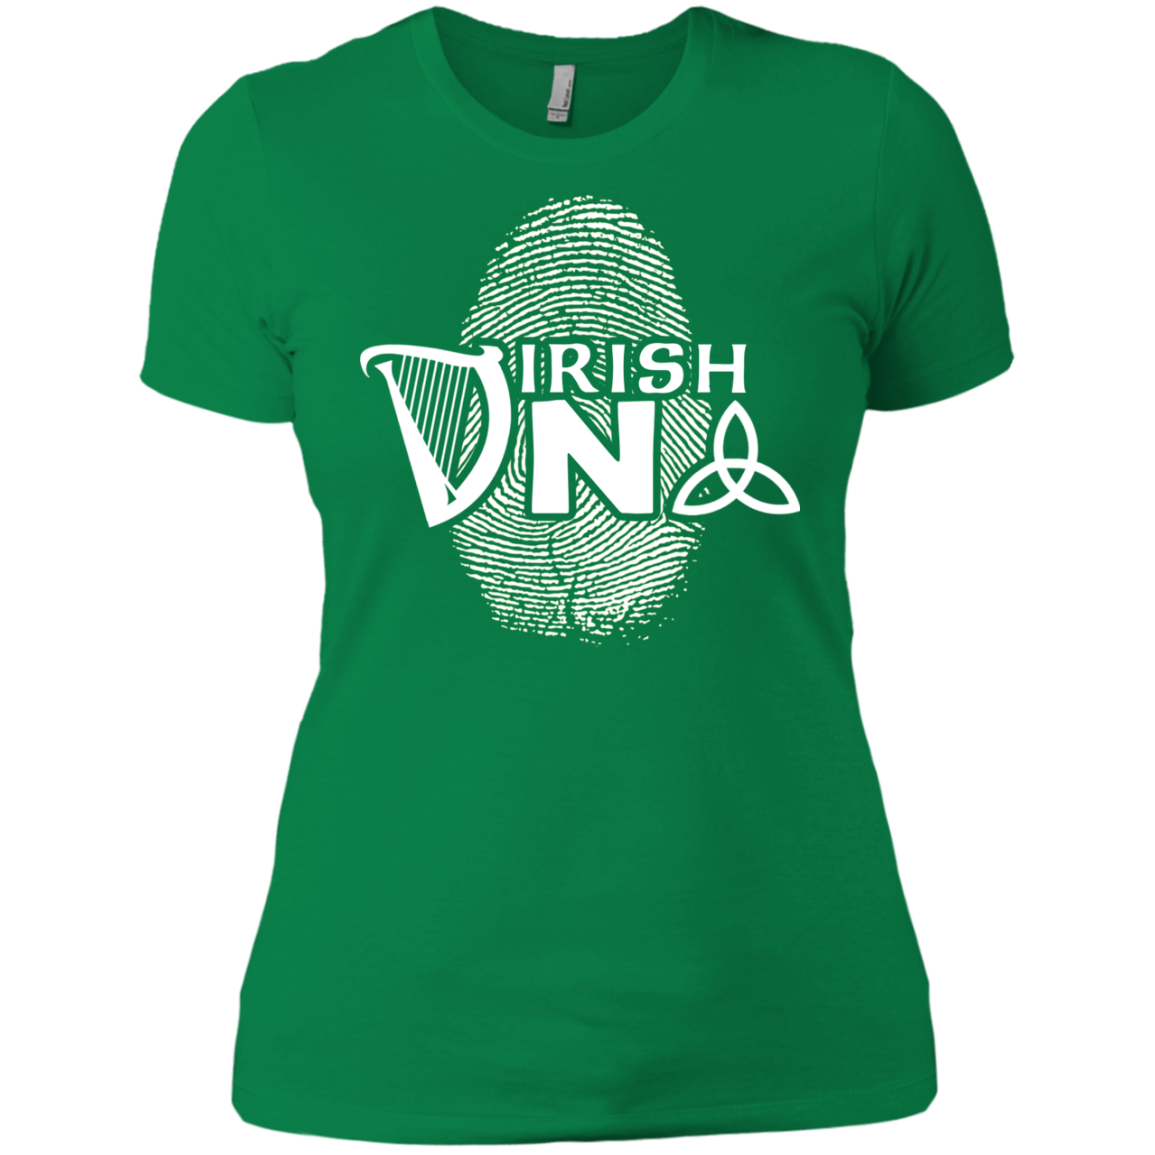 Irish DNA St Patrick Day Clothing St Patrick's Day Shirts Hoodies For Men And Women - Blue Fox